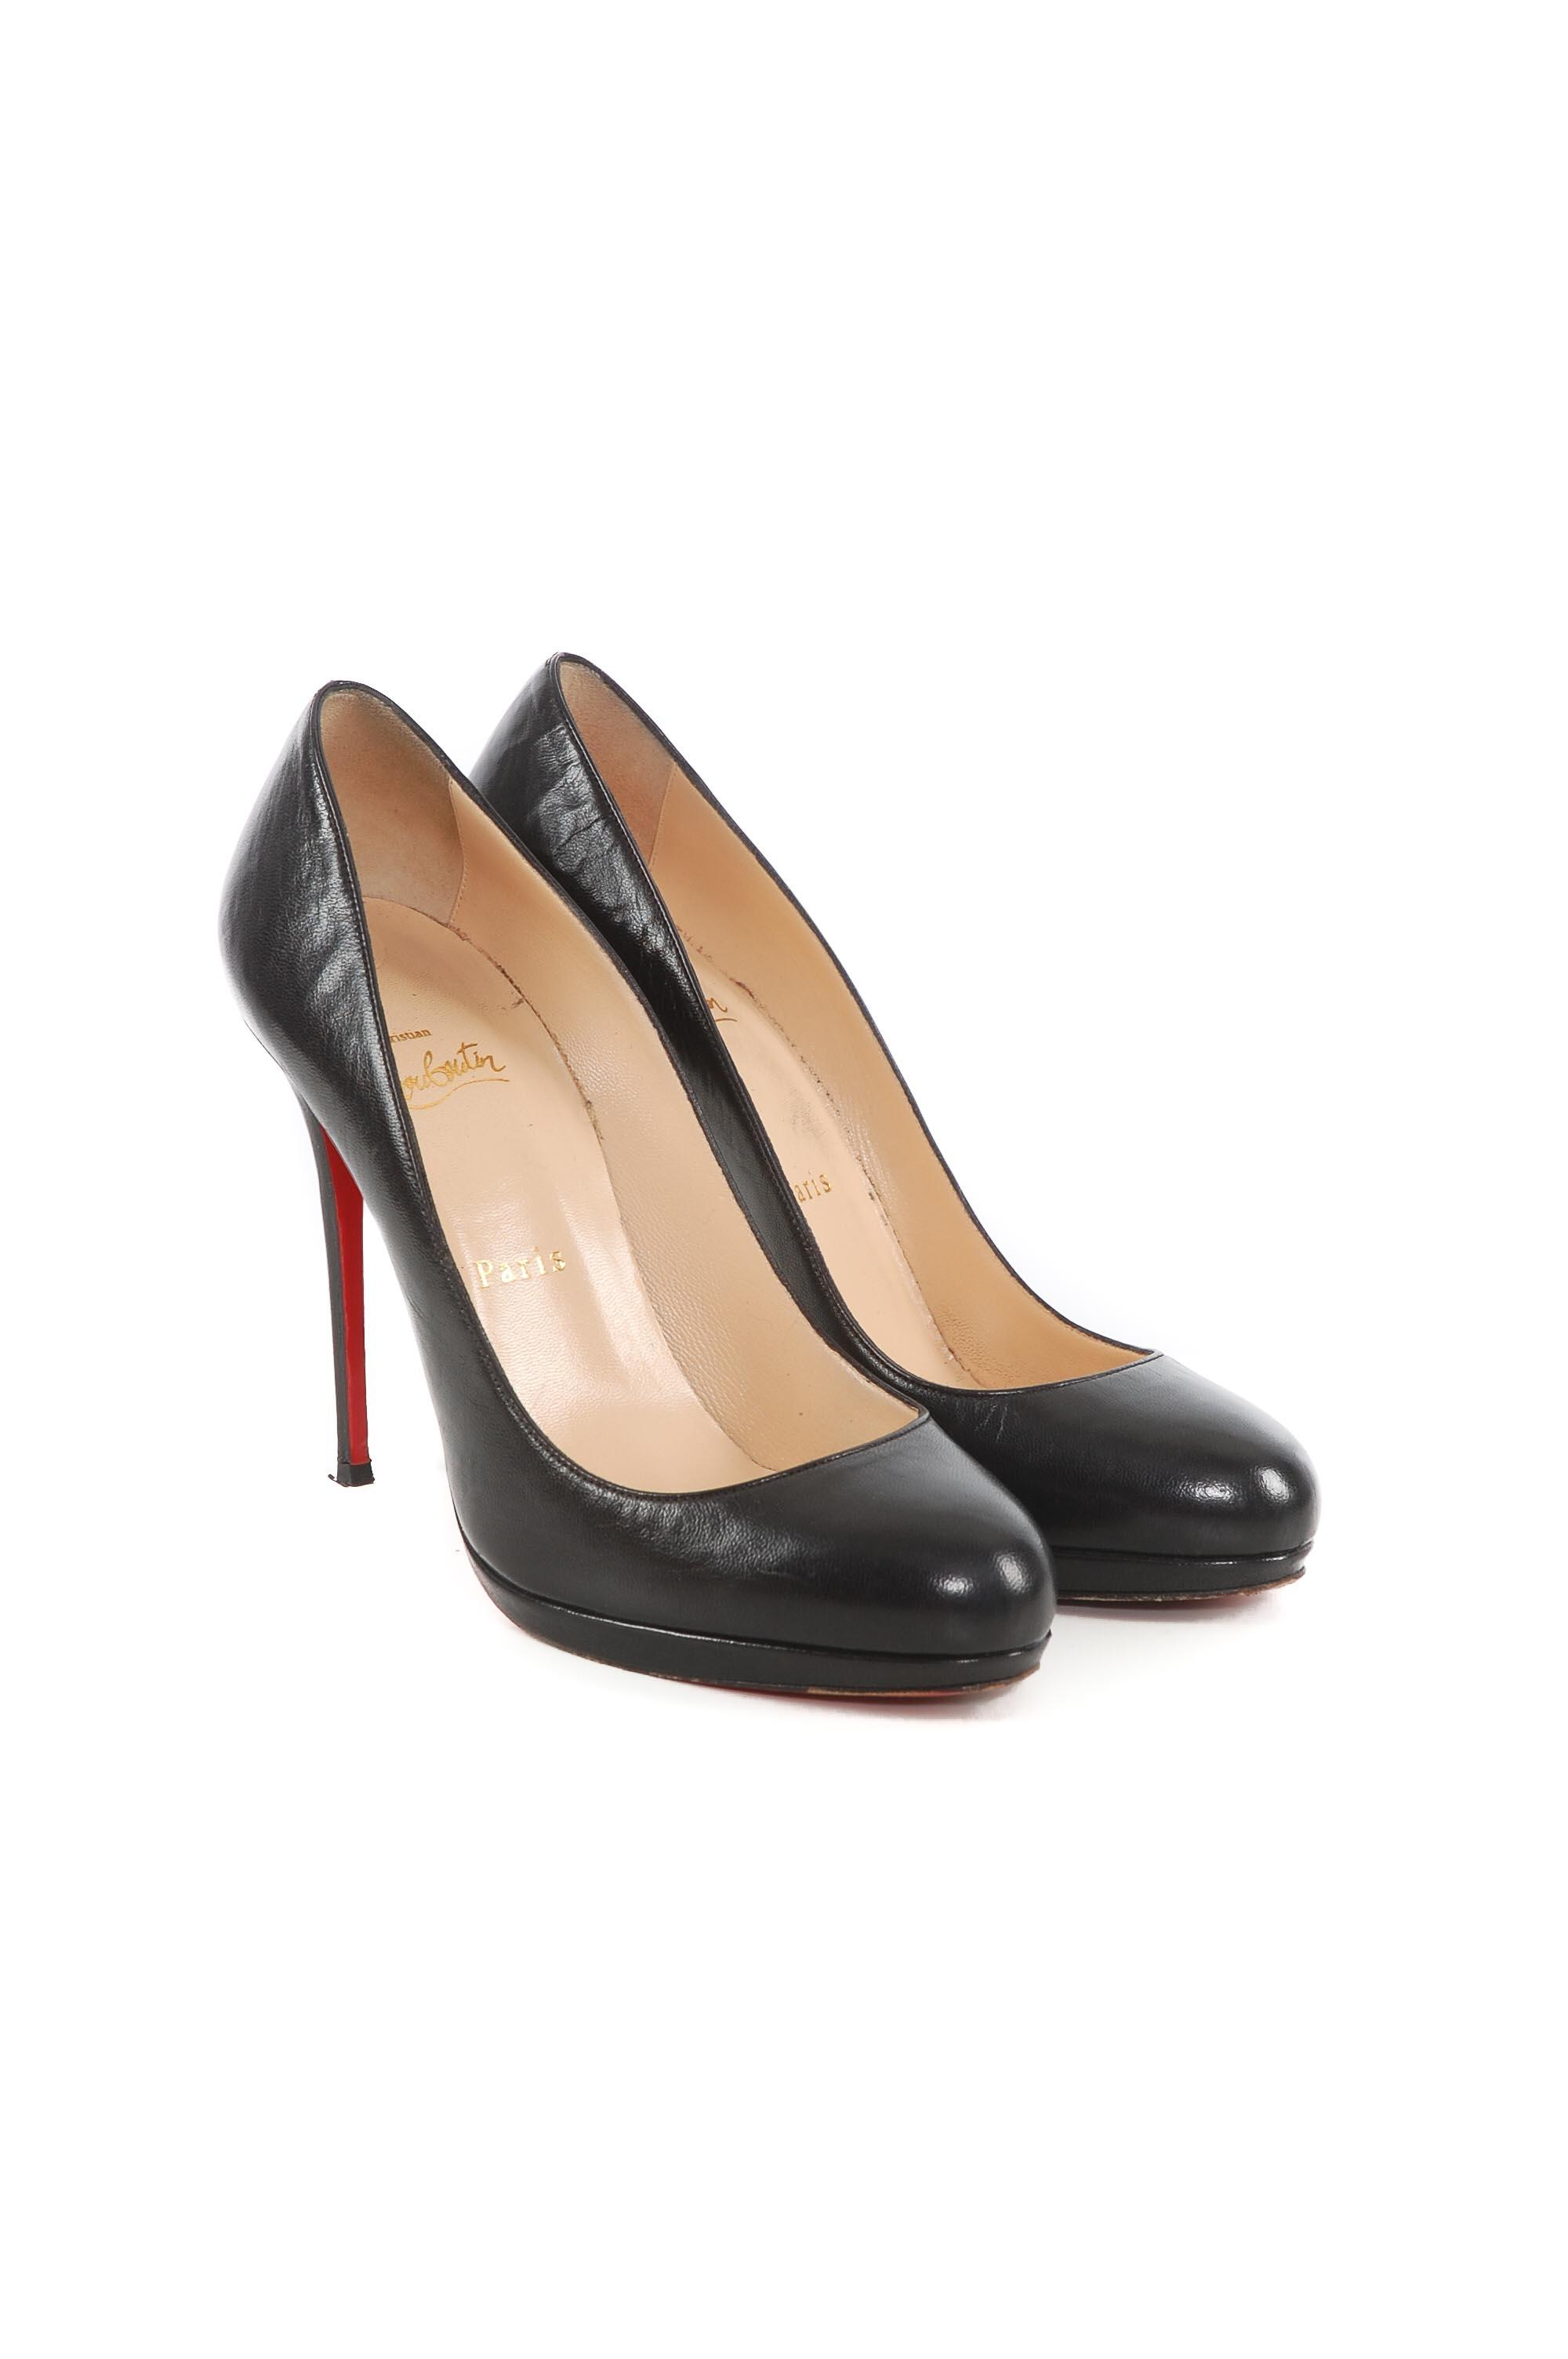 bf661429db3 Man Woman:Christian Louboutin Black Leather Pumps Size EU 39 (Approx. US US  US 9) Regular (M